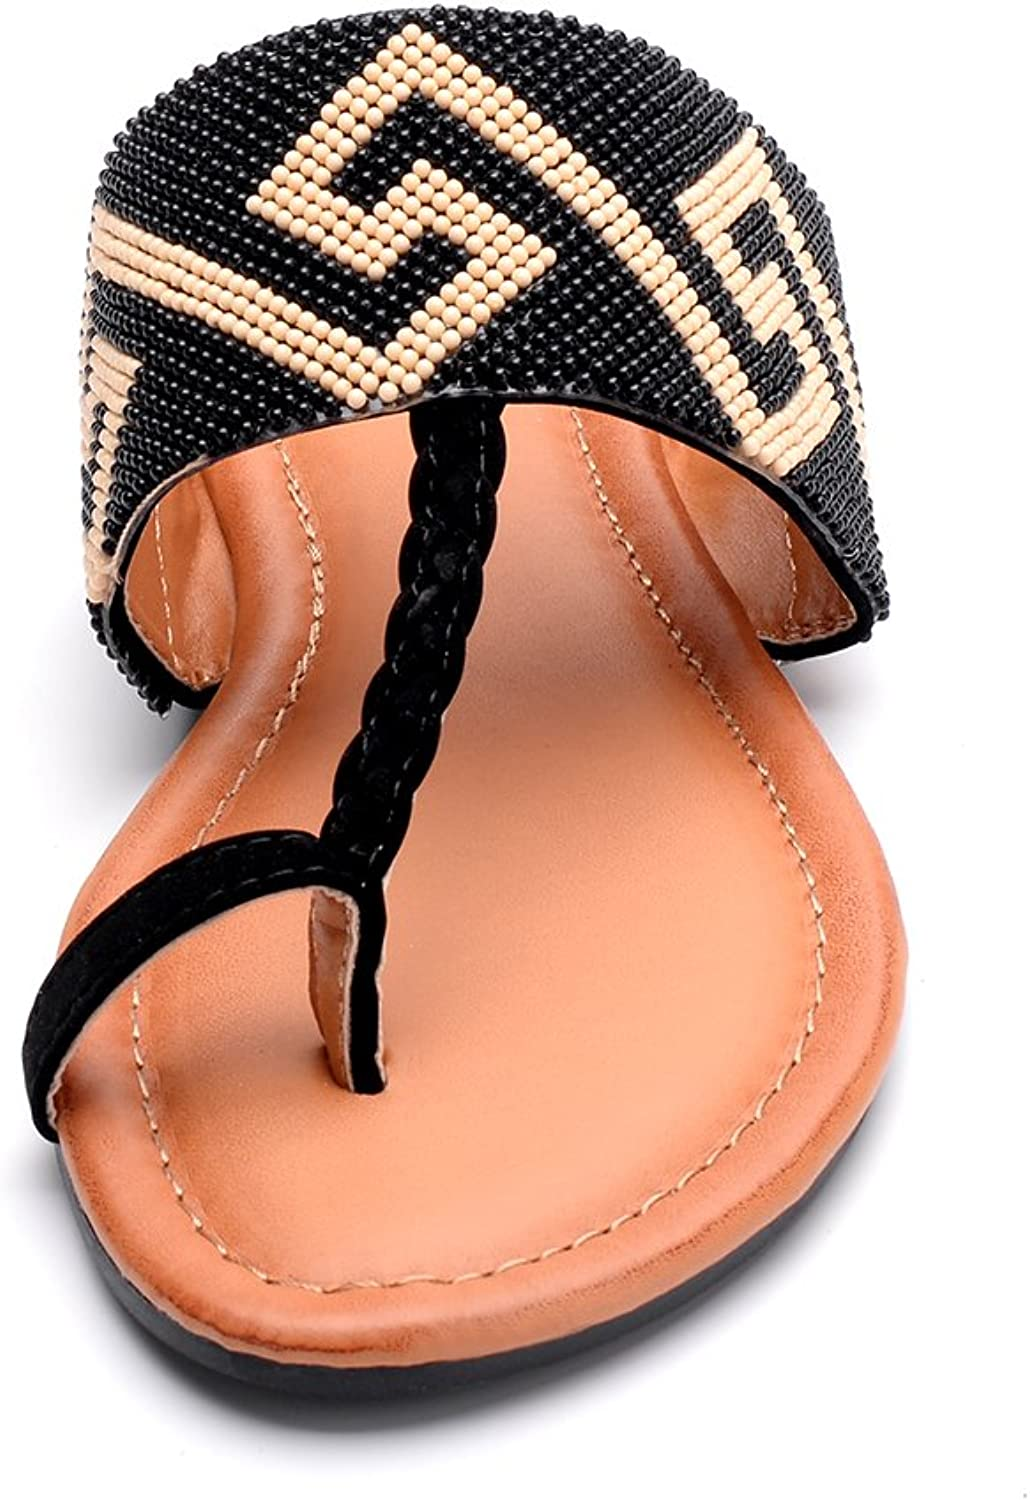 Amy-1 Tribal Beaded Indian Accent Toe Ring Flat Sandal Mila Lady